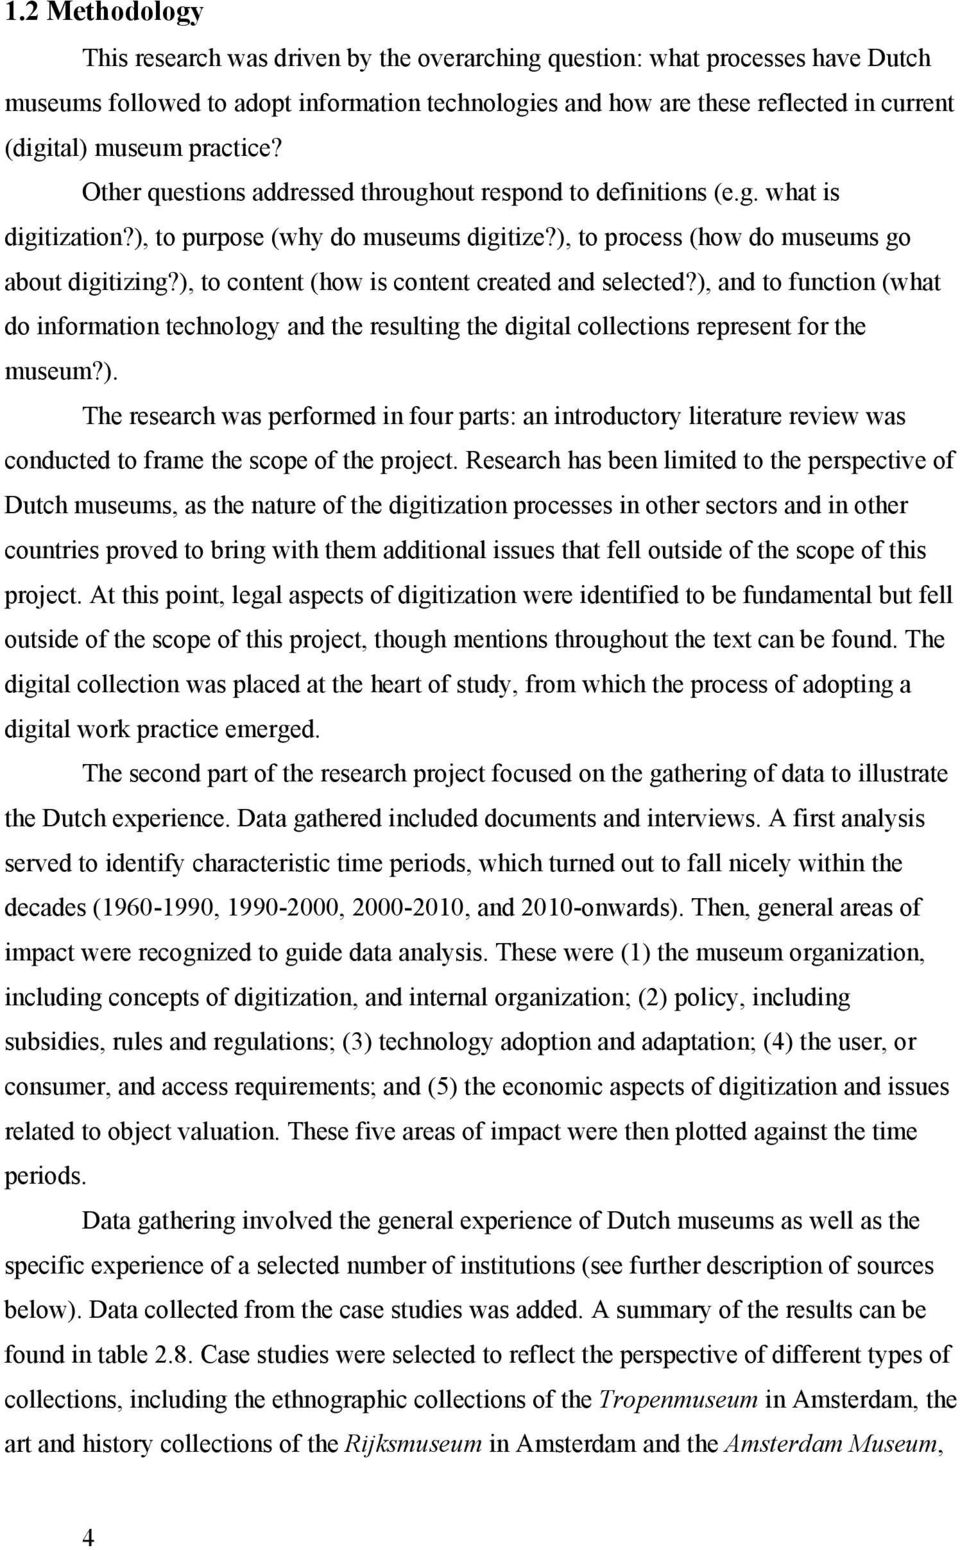 ), to content (how is content created and selected?), and to function (what do information technology and the resulting the digital collections represent for the museum?). The research was performed in four parts: an introductory literature review was conducted to frame the scope of the project.